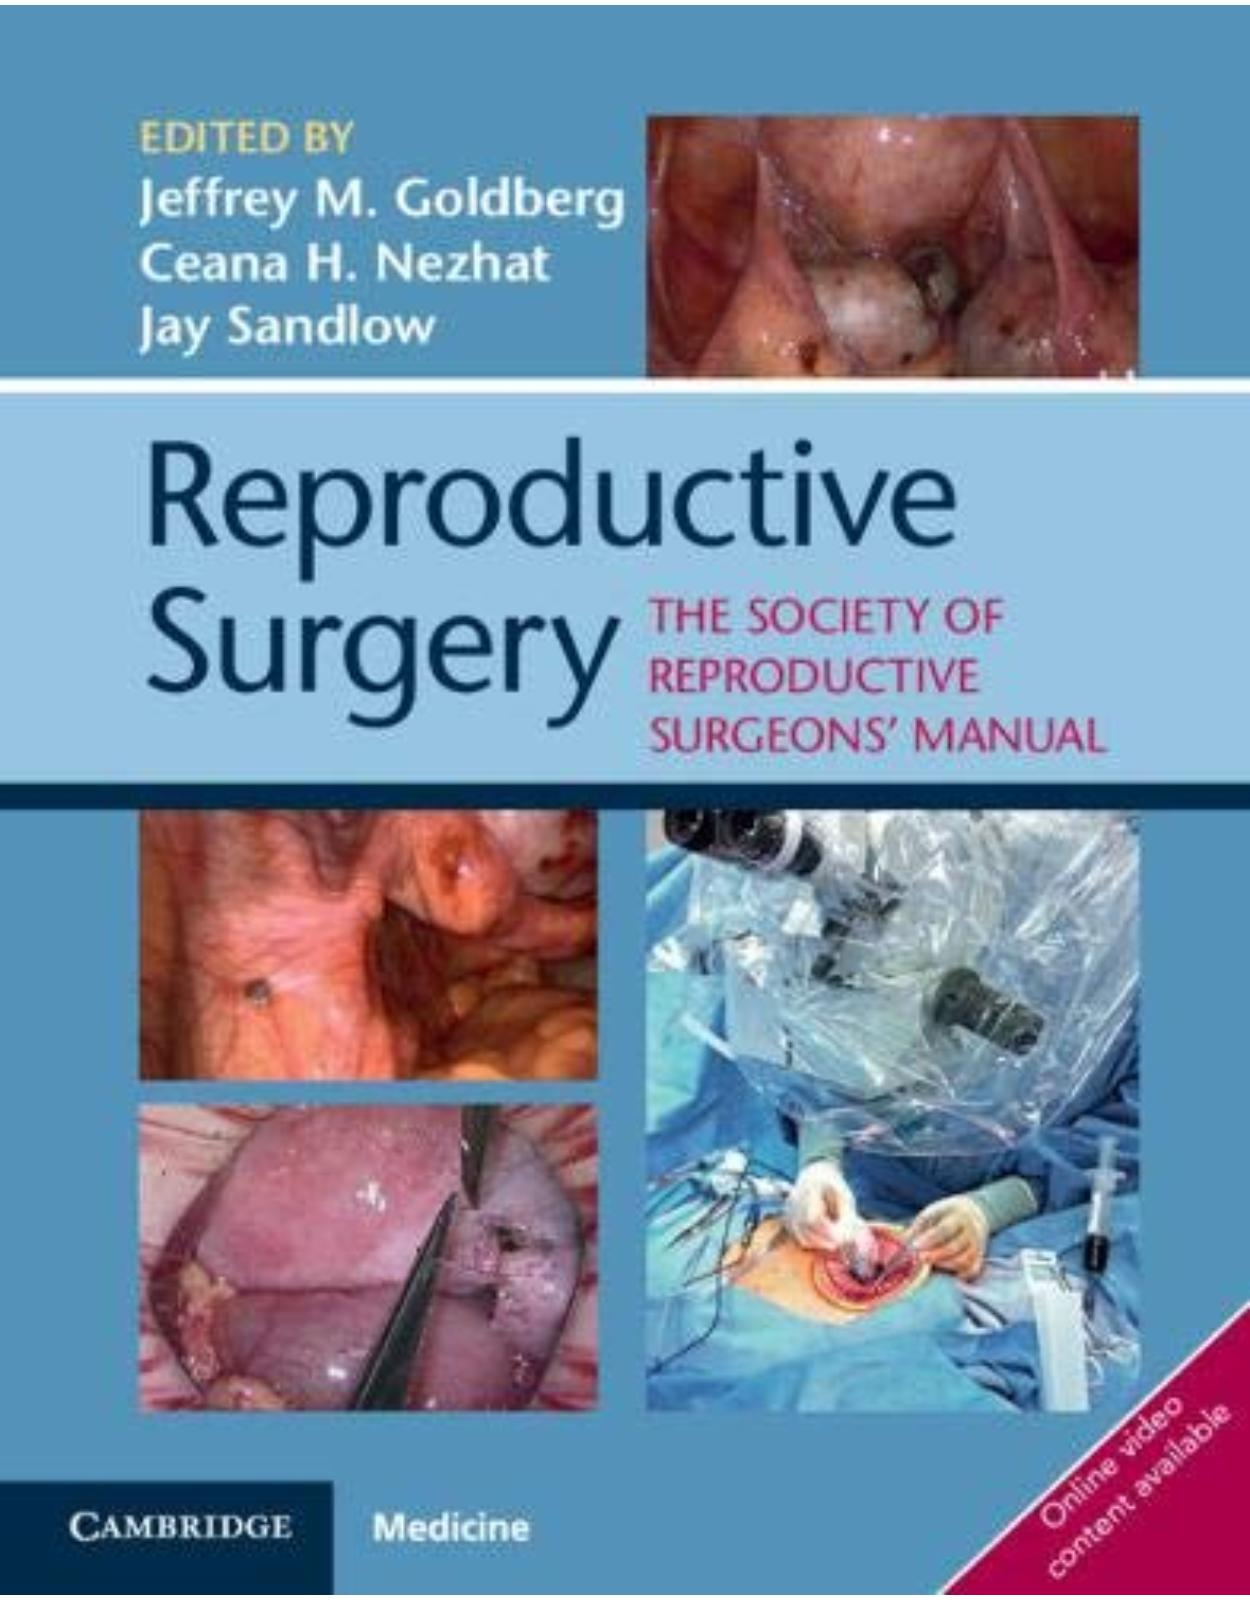 Reproductive SurgeryThe Society of Reproductive Surgeons' Manual